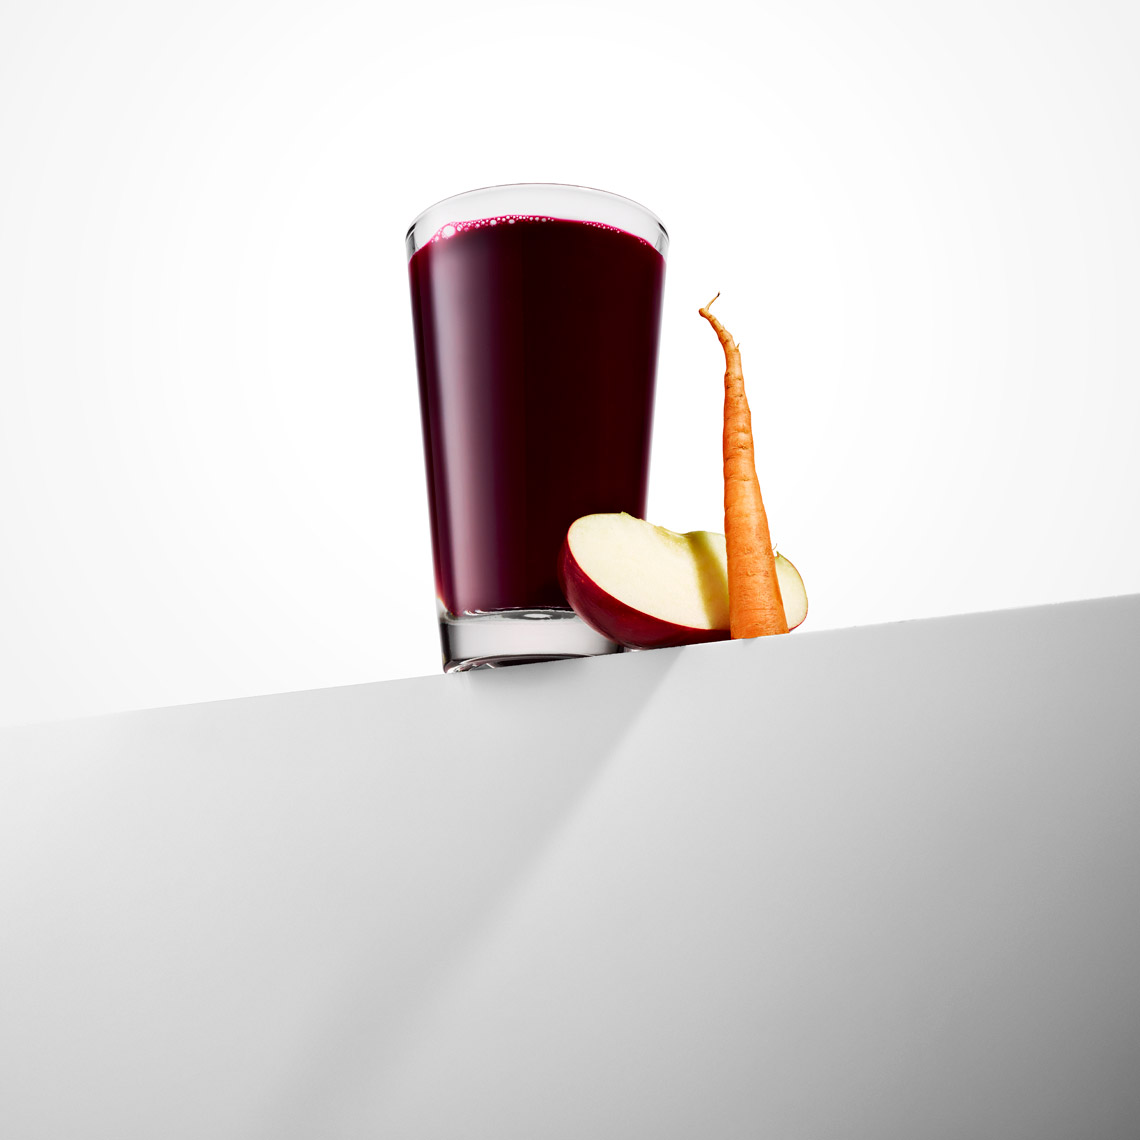 juice_beet_apple_web